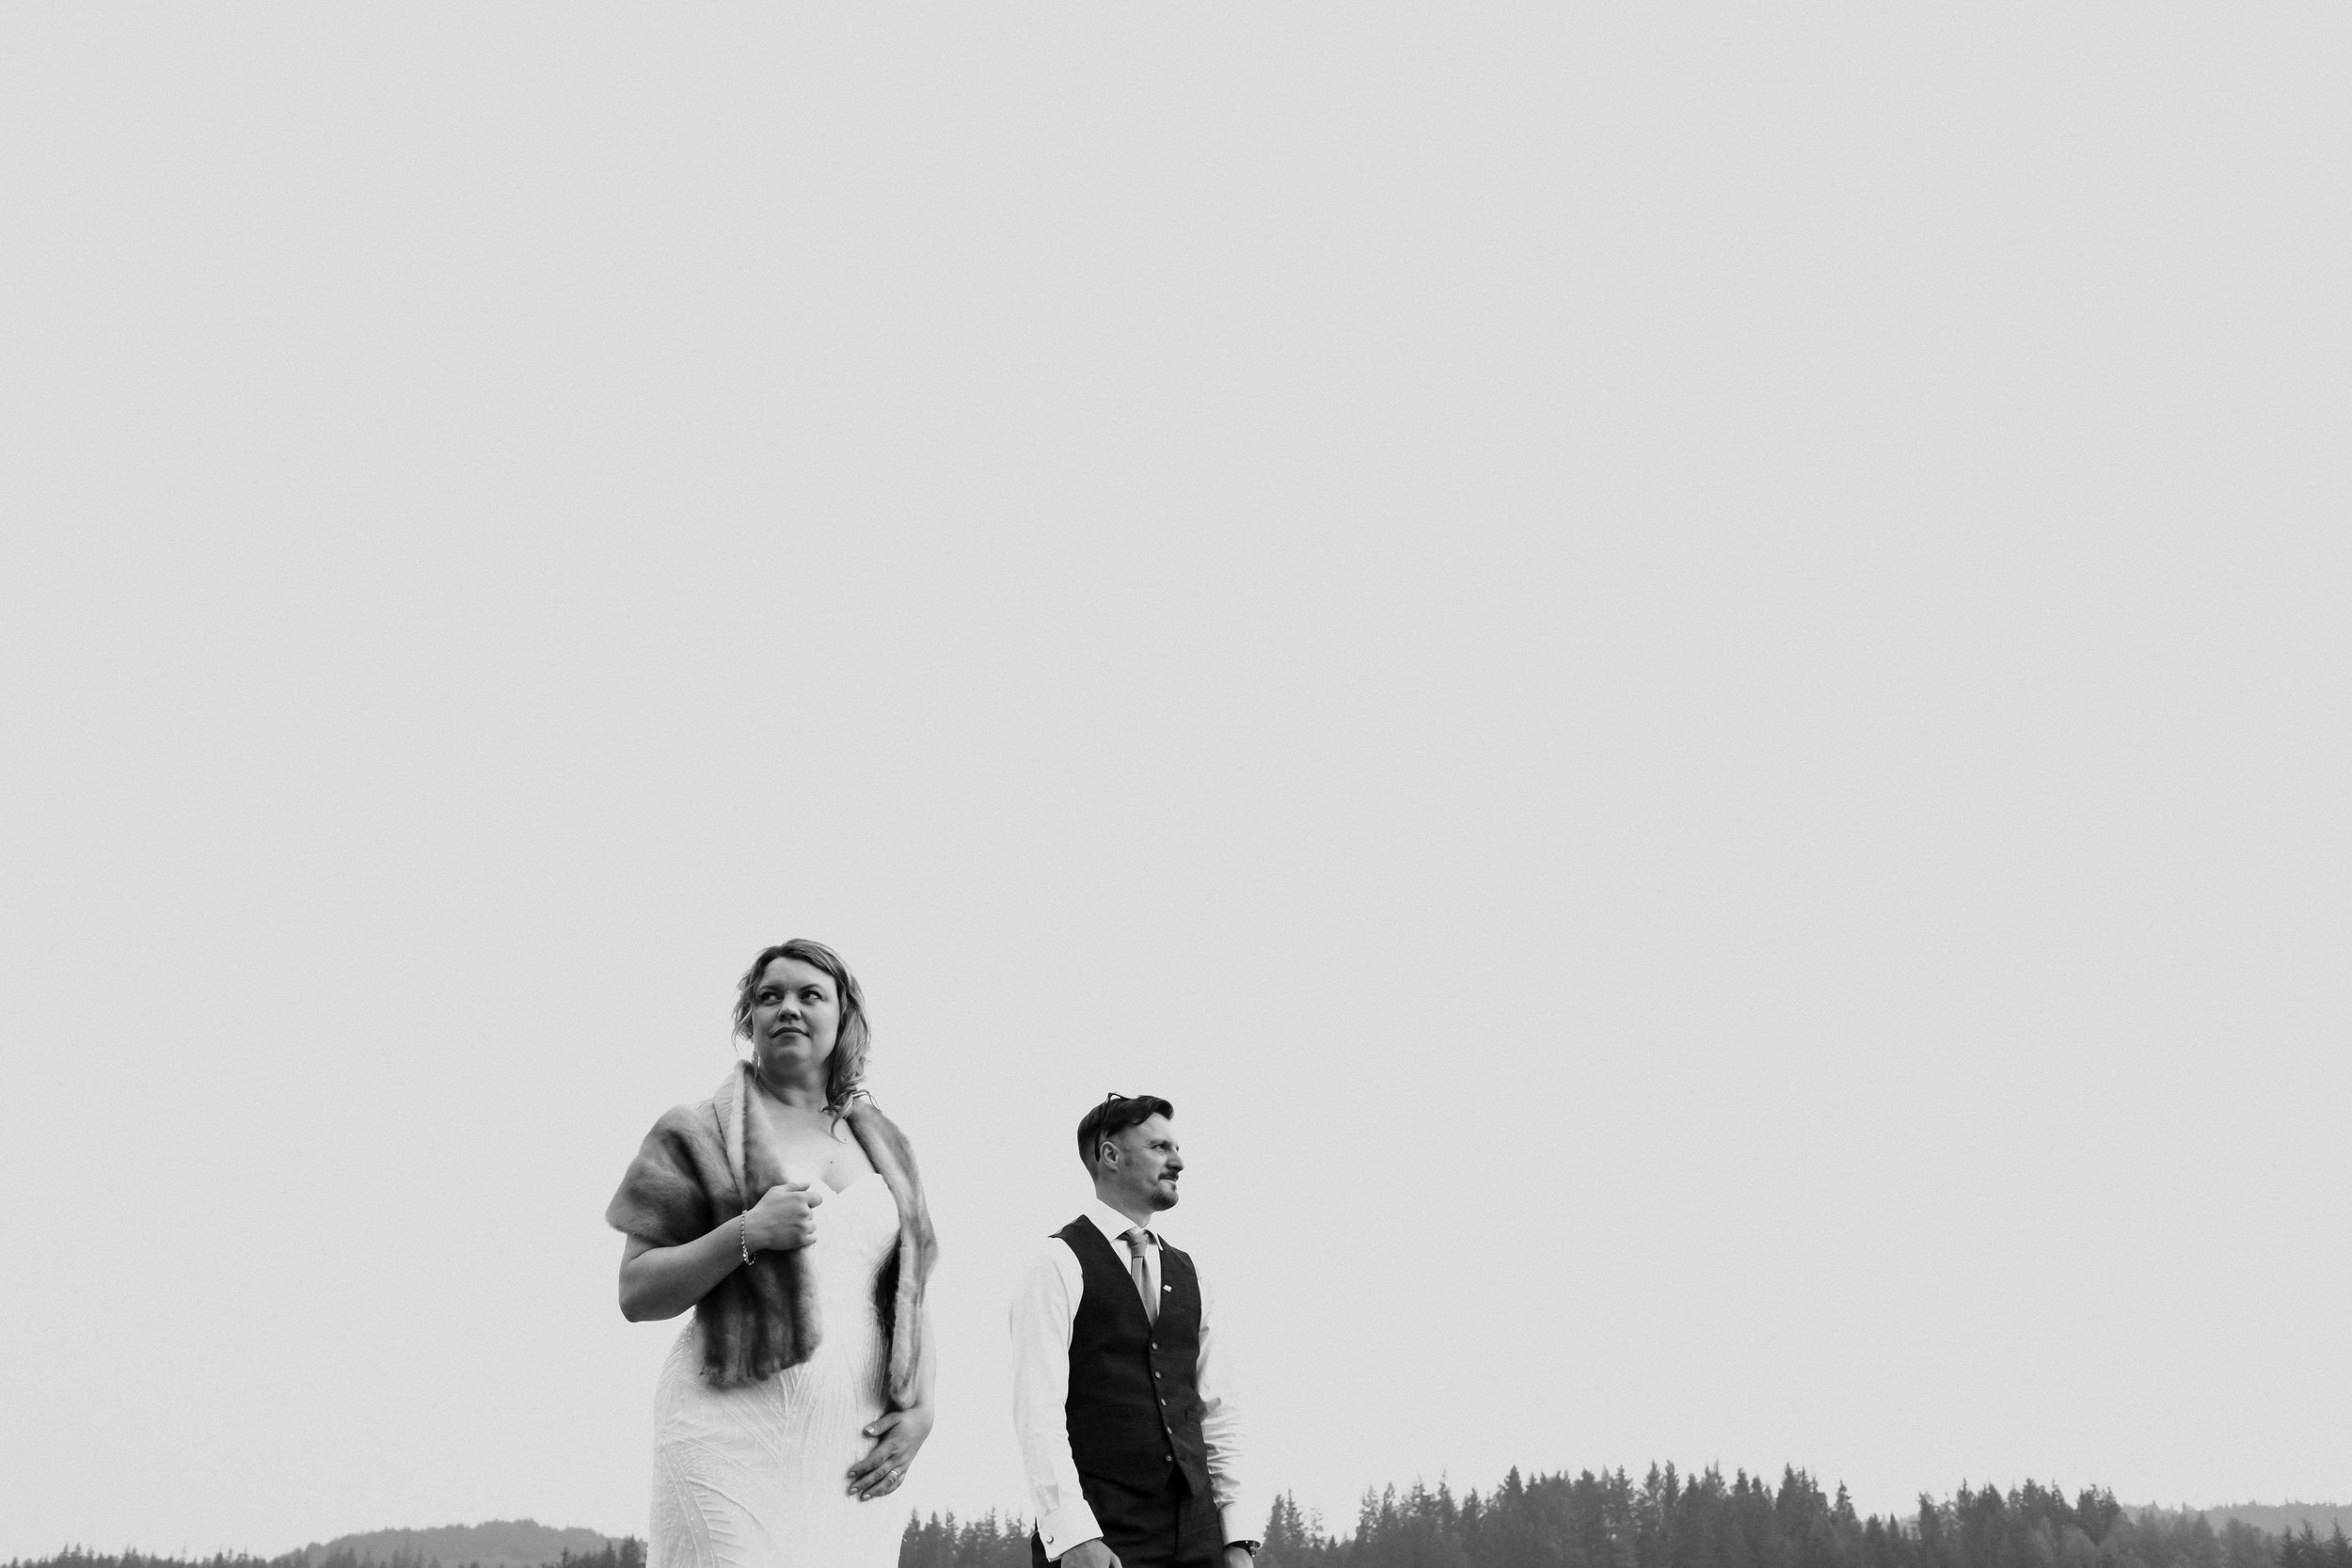 A bride and groom look into the distance and stand apart from each other.